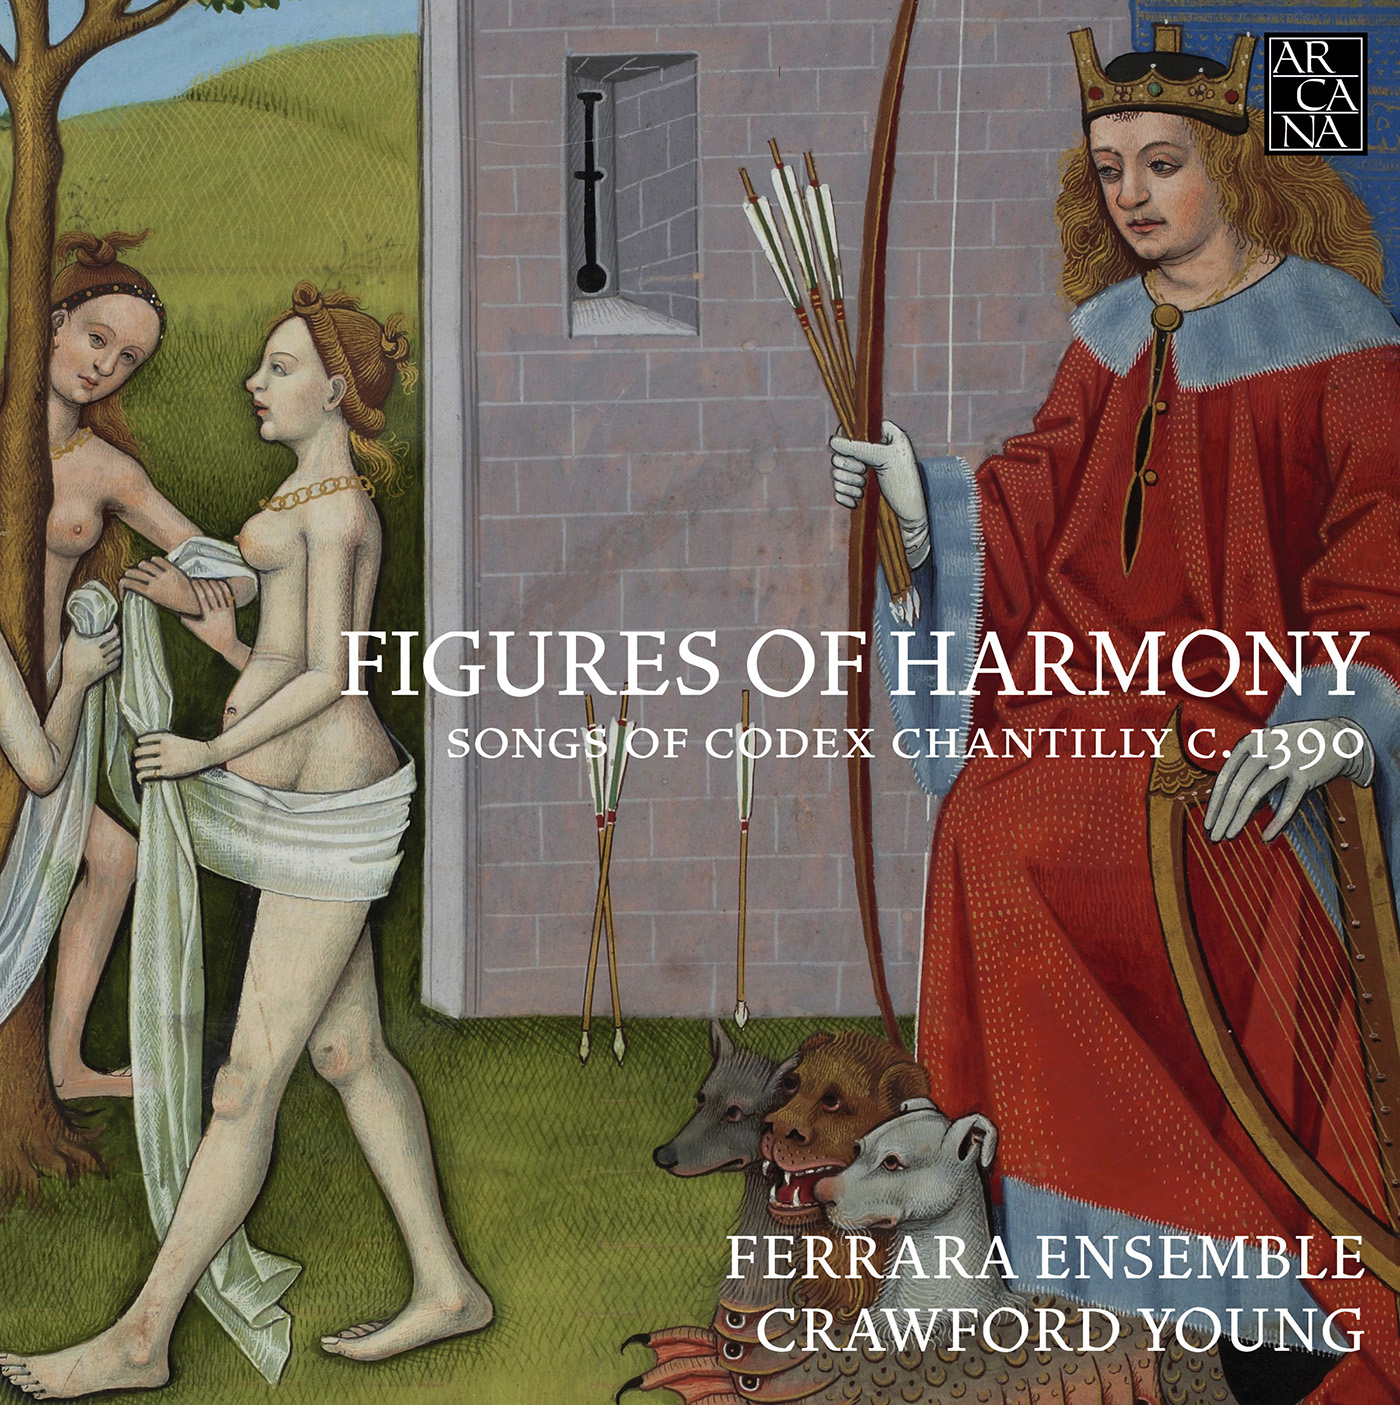 Figures of Harmony: Songs of Codex Chantilly